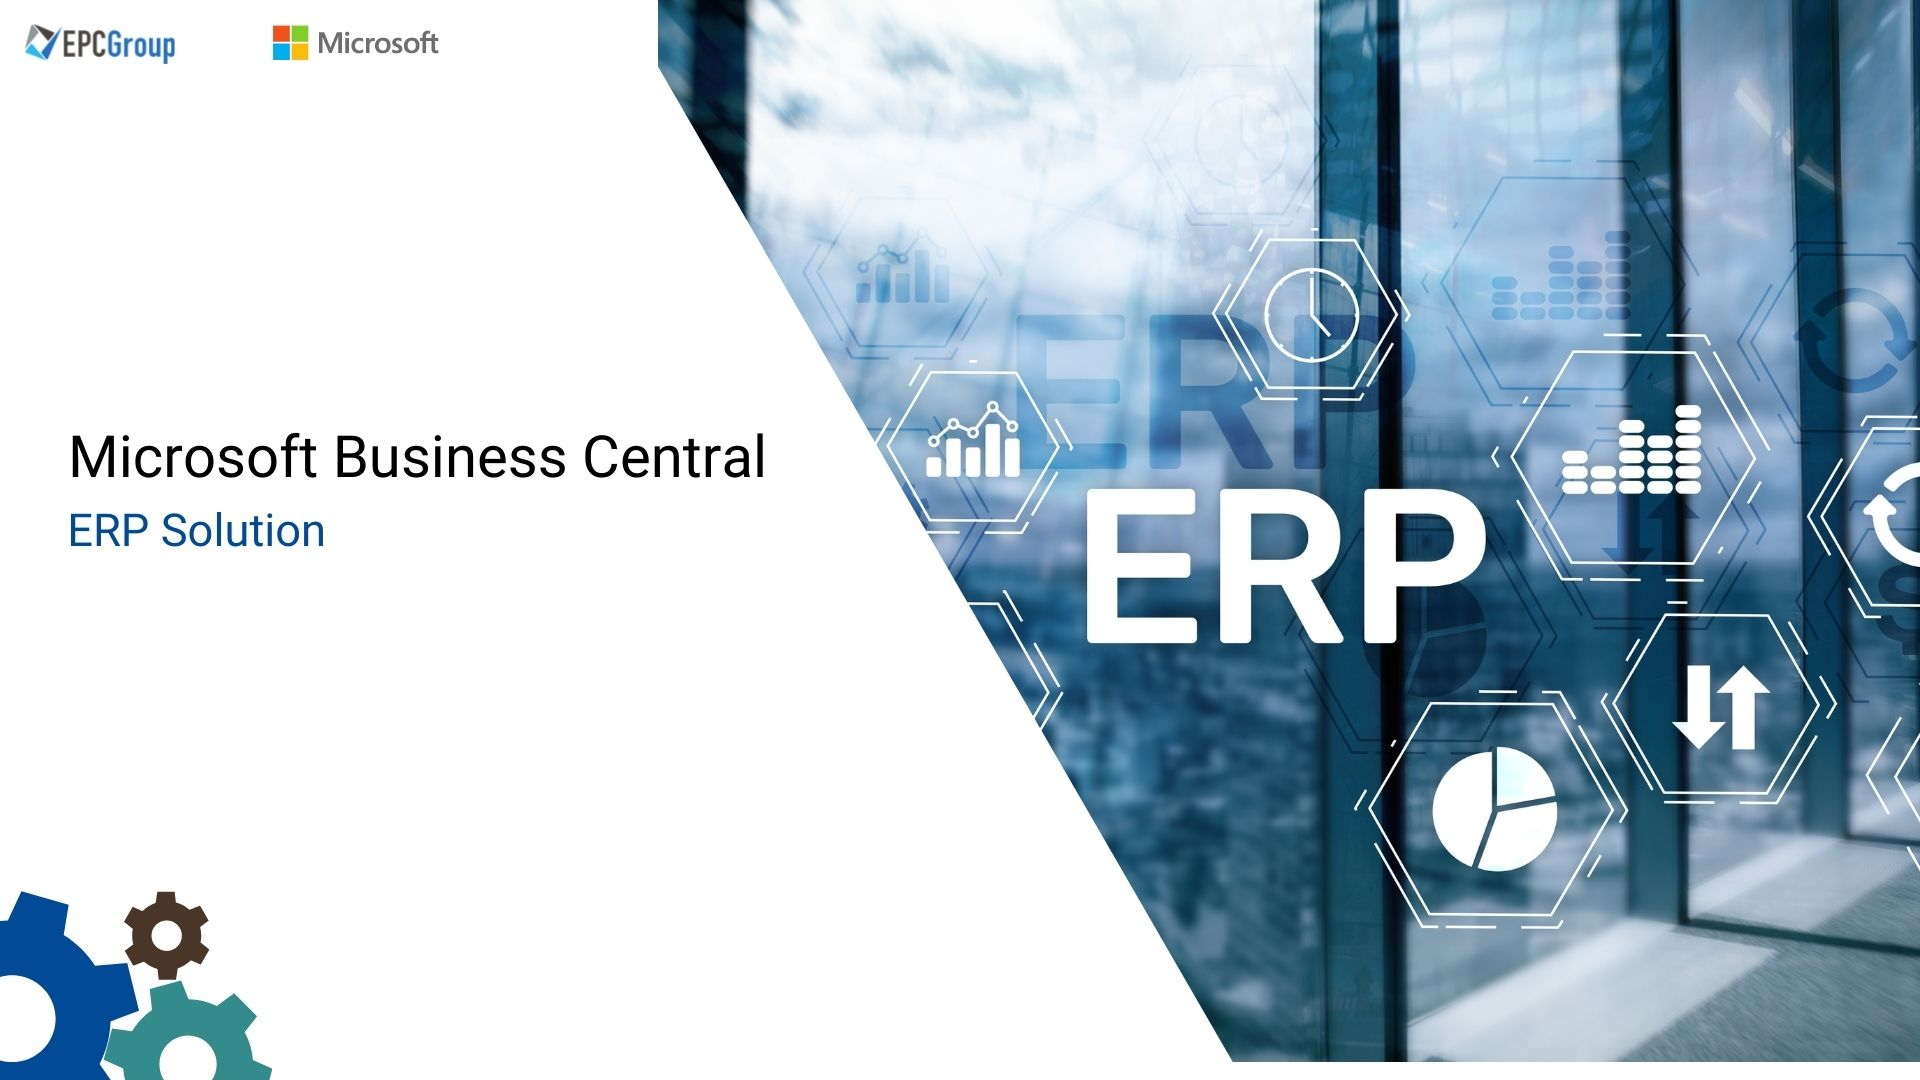 WHY MICROSOFT BUSINESS CENTRAL IS THE BEST ERP SOLUTION IN THE MARKET? - thumb image